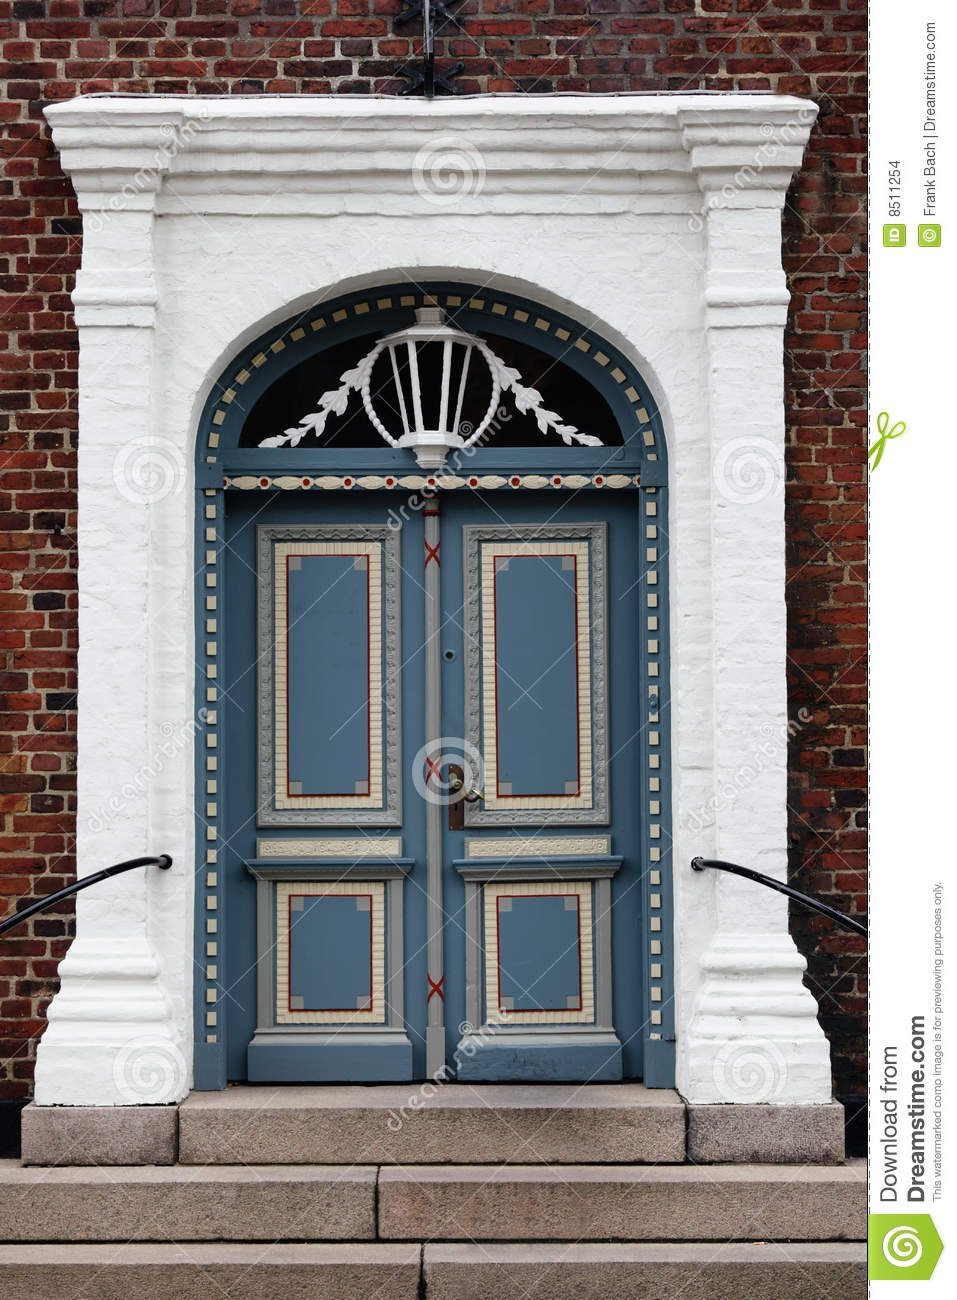 Antique door - Antique Door Stock Photo. Image Of Vintage, Historical - 8511254